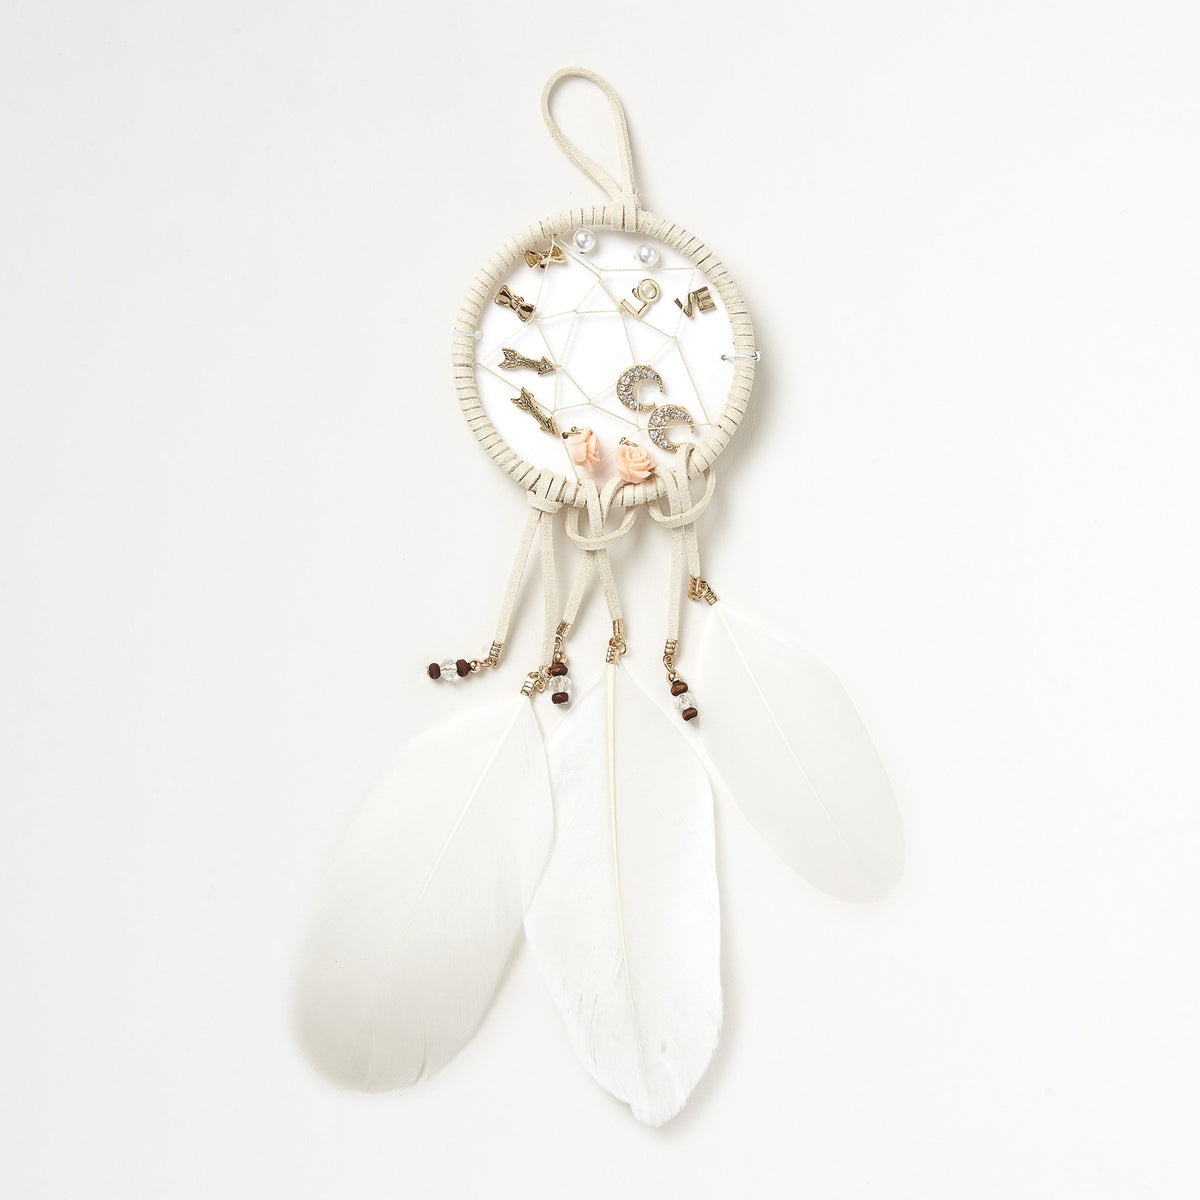 Cream Dreamcatcher Earrings